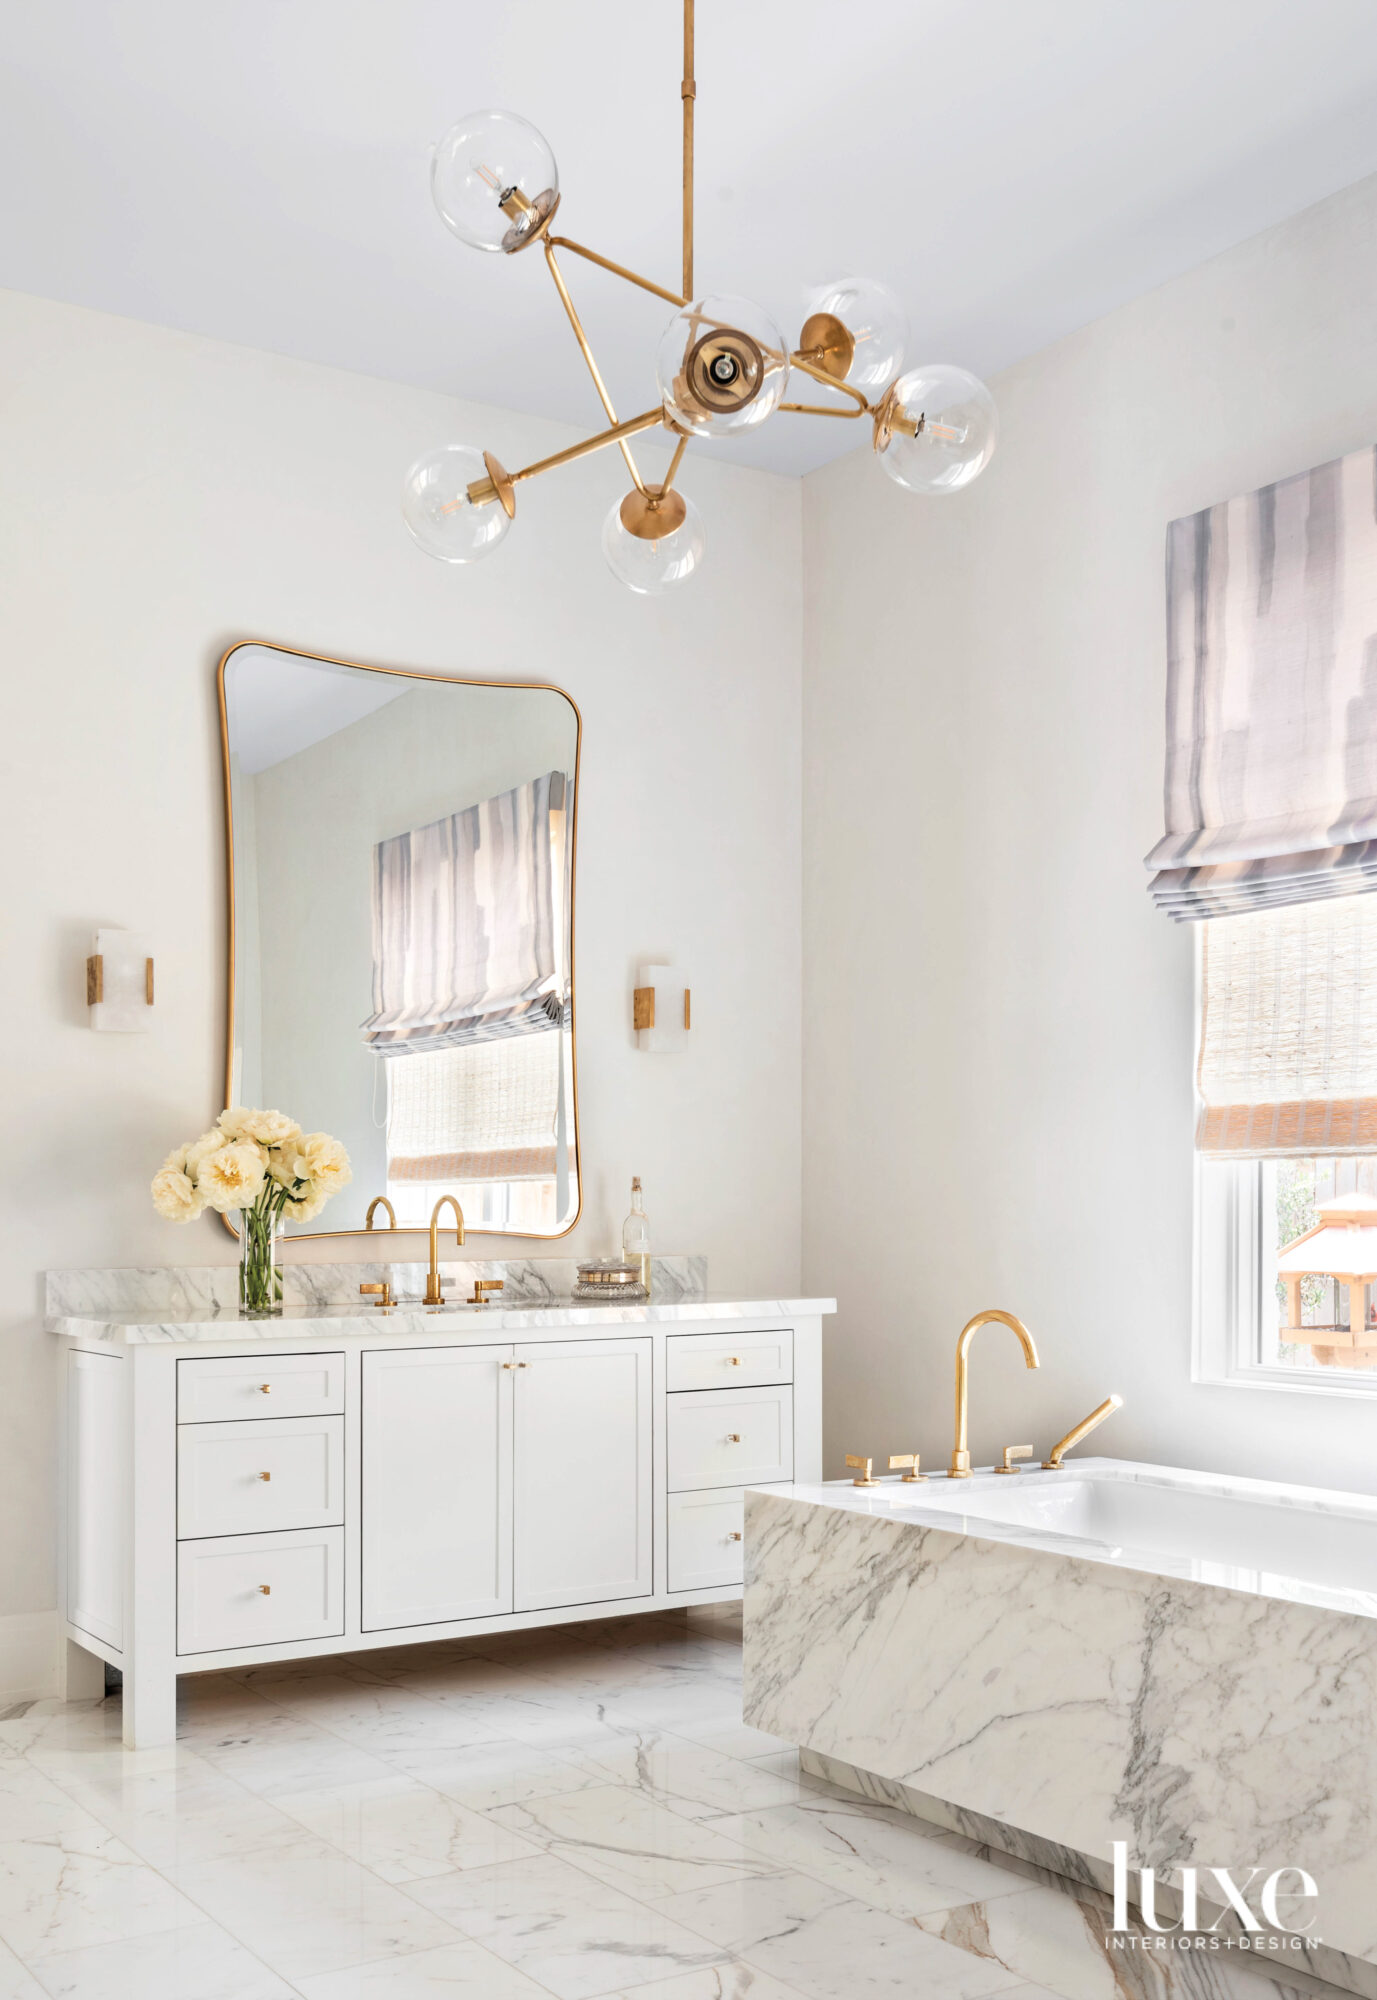 Marble-clad main bathroom with gold...